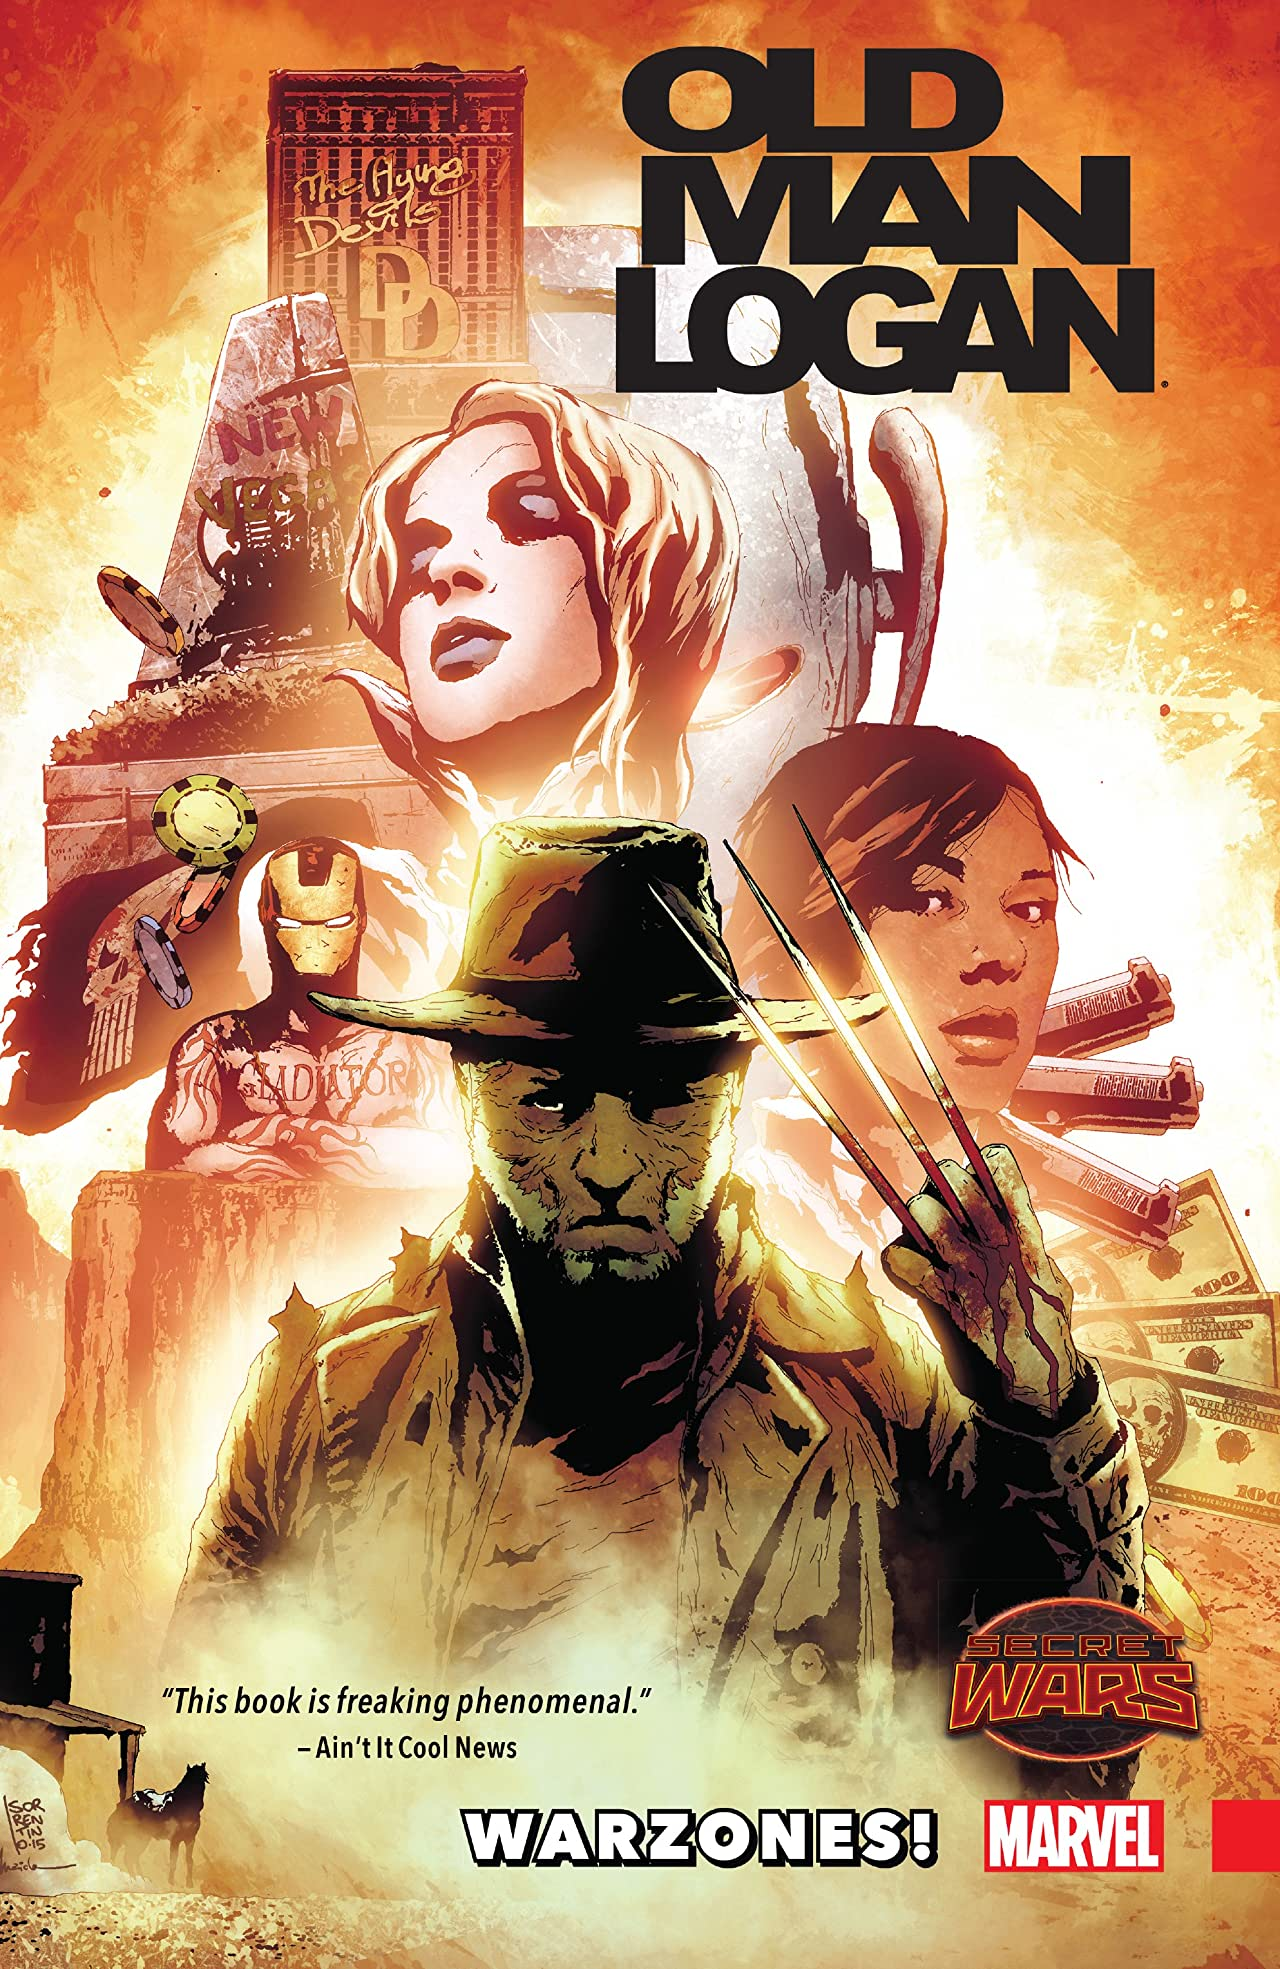 Wolverine: Old Man Logan Vol. 0 : Warzones!